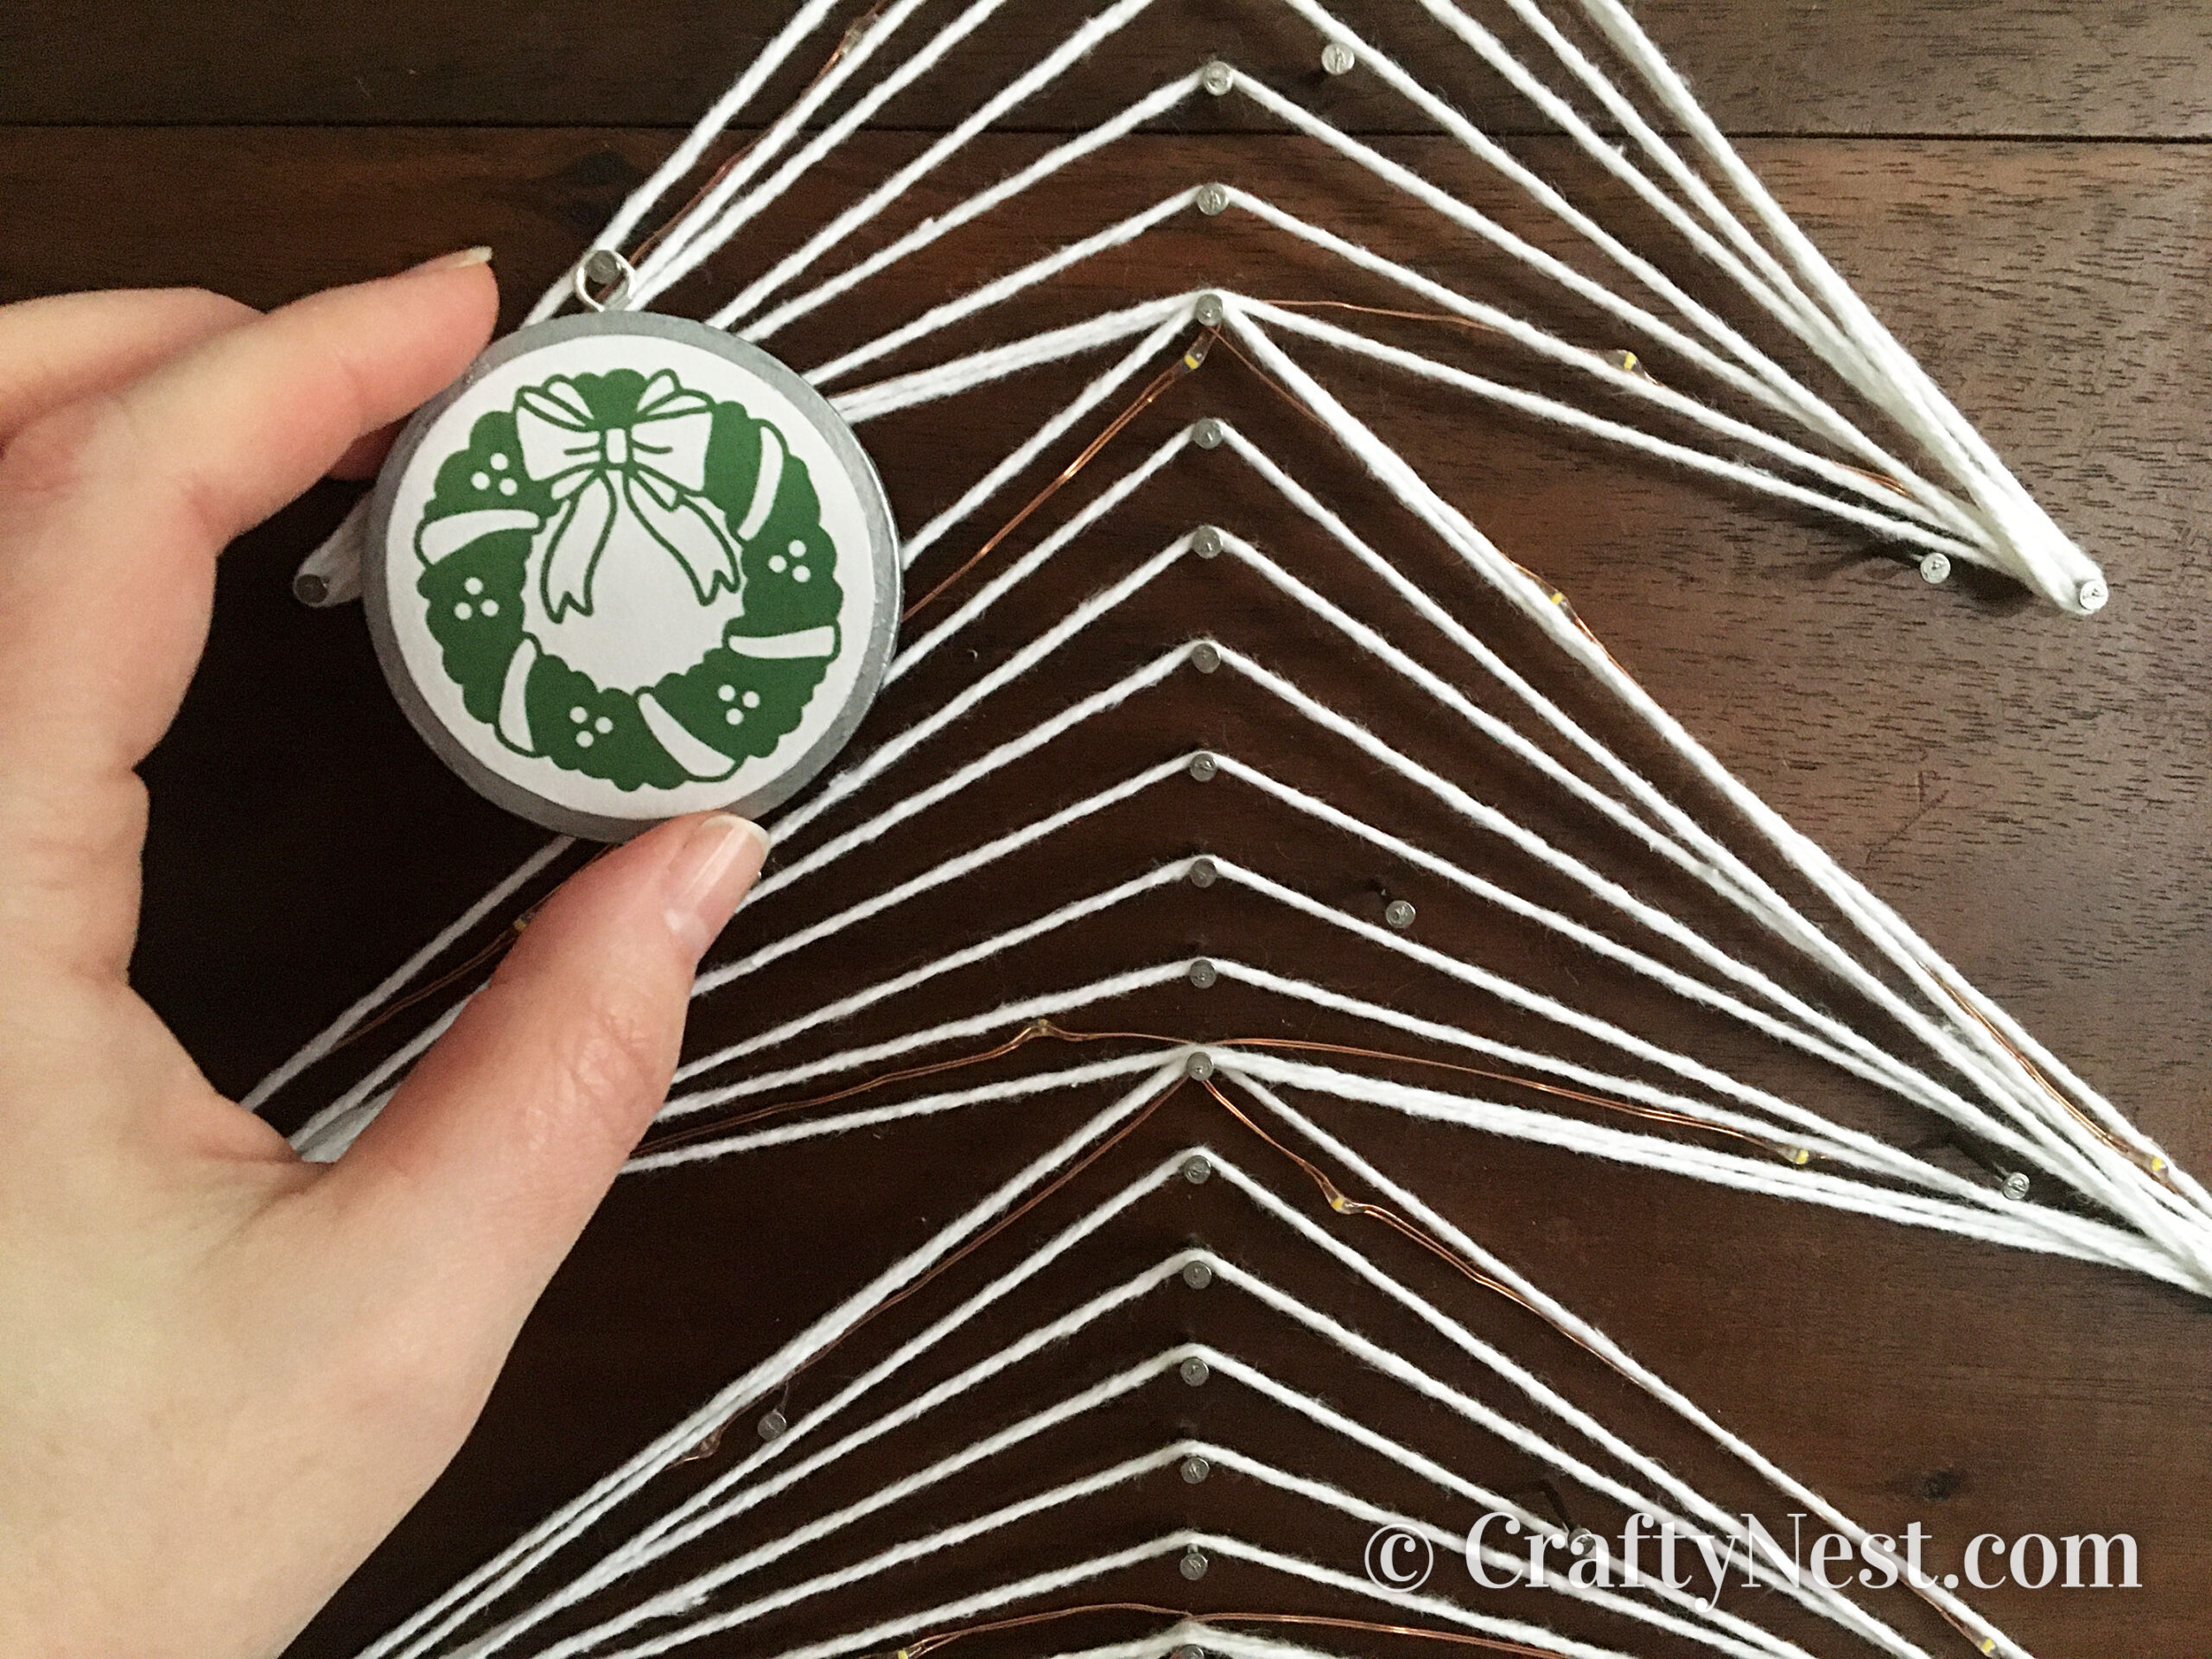 Hanging an ornament on the string-art tree, photo